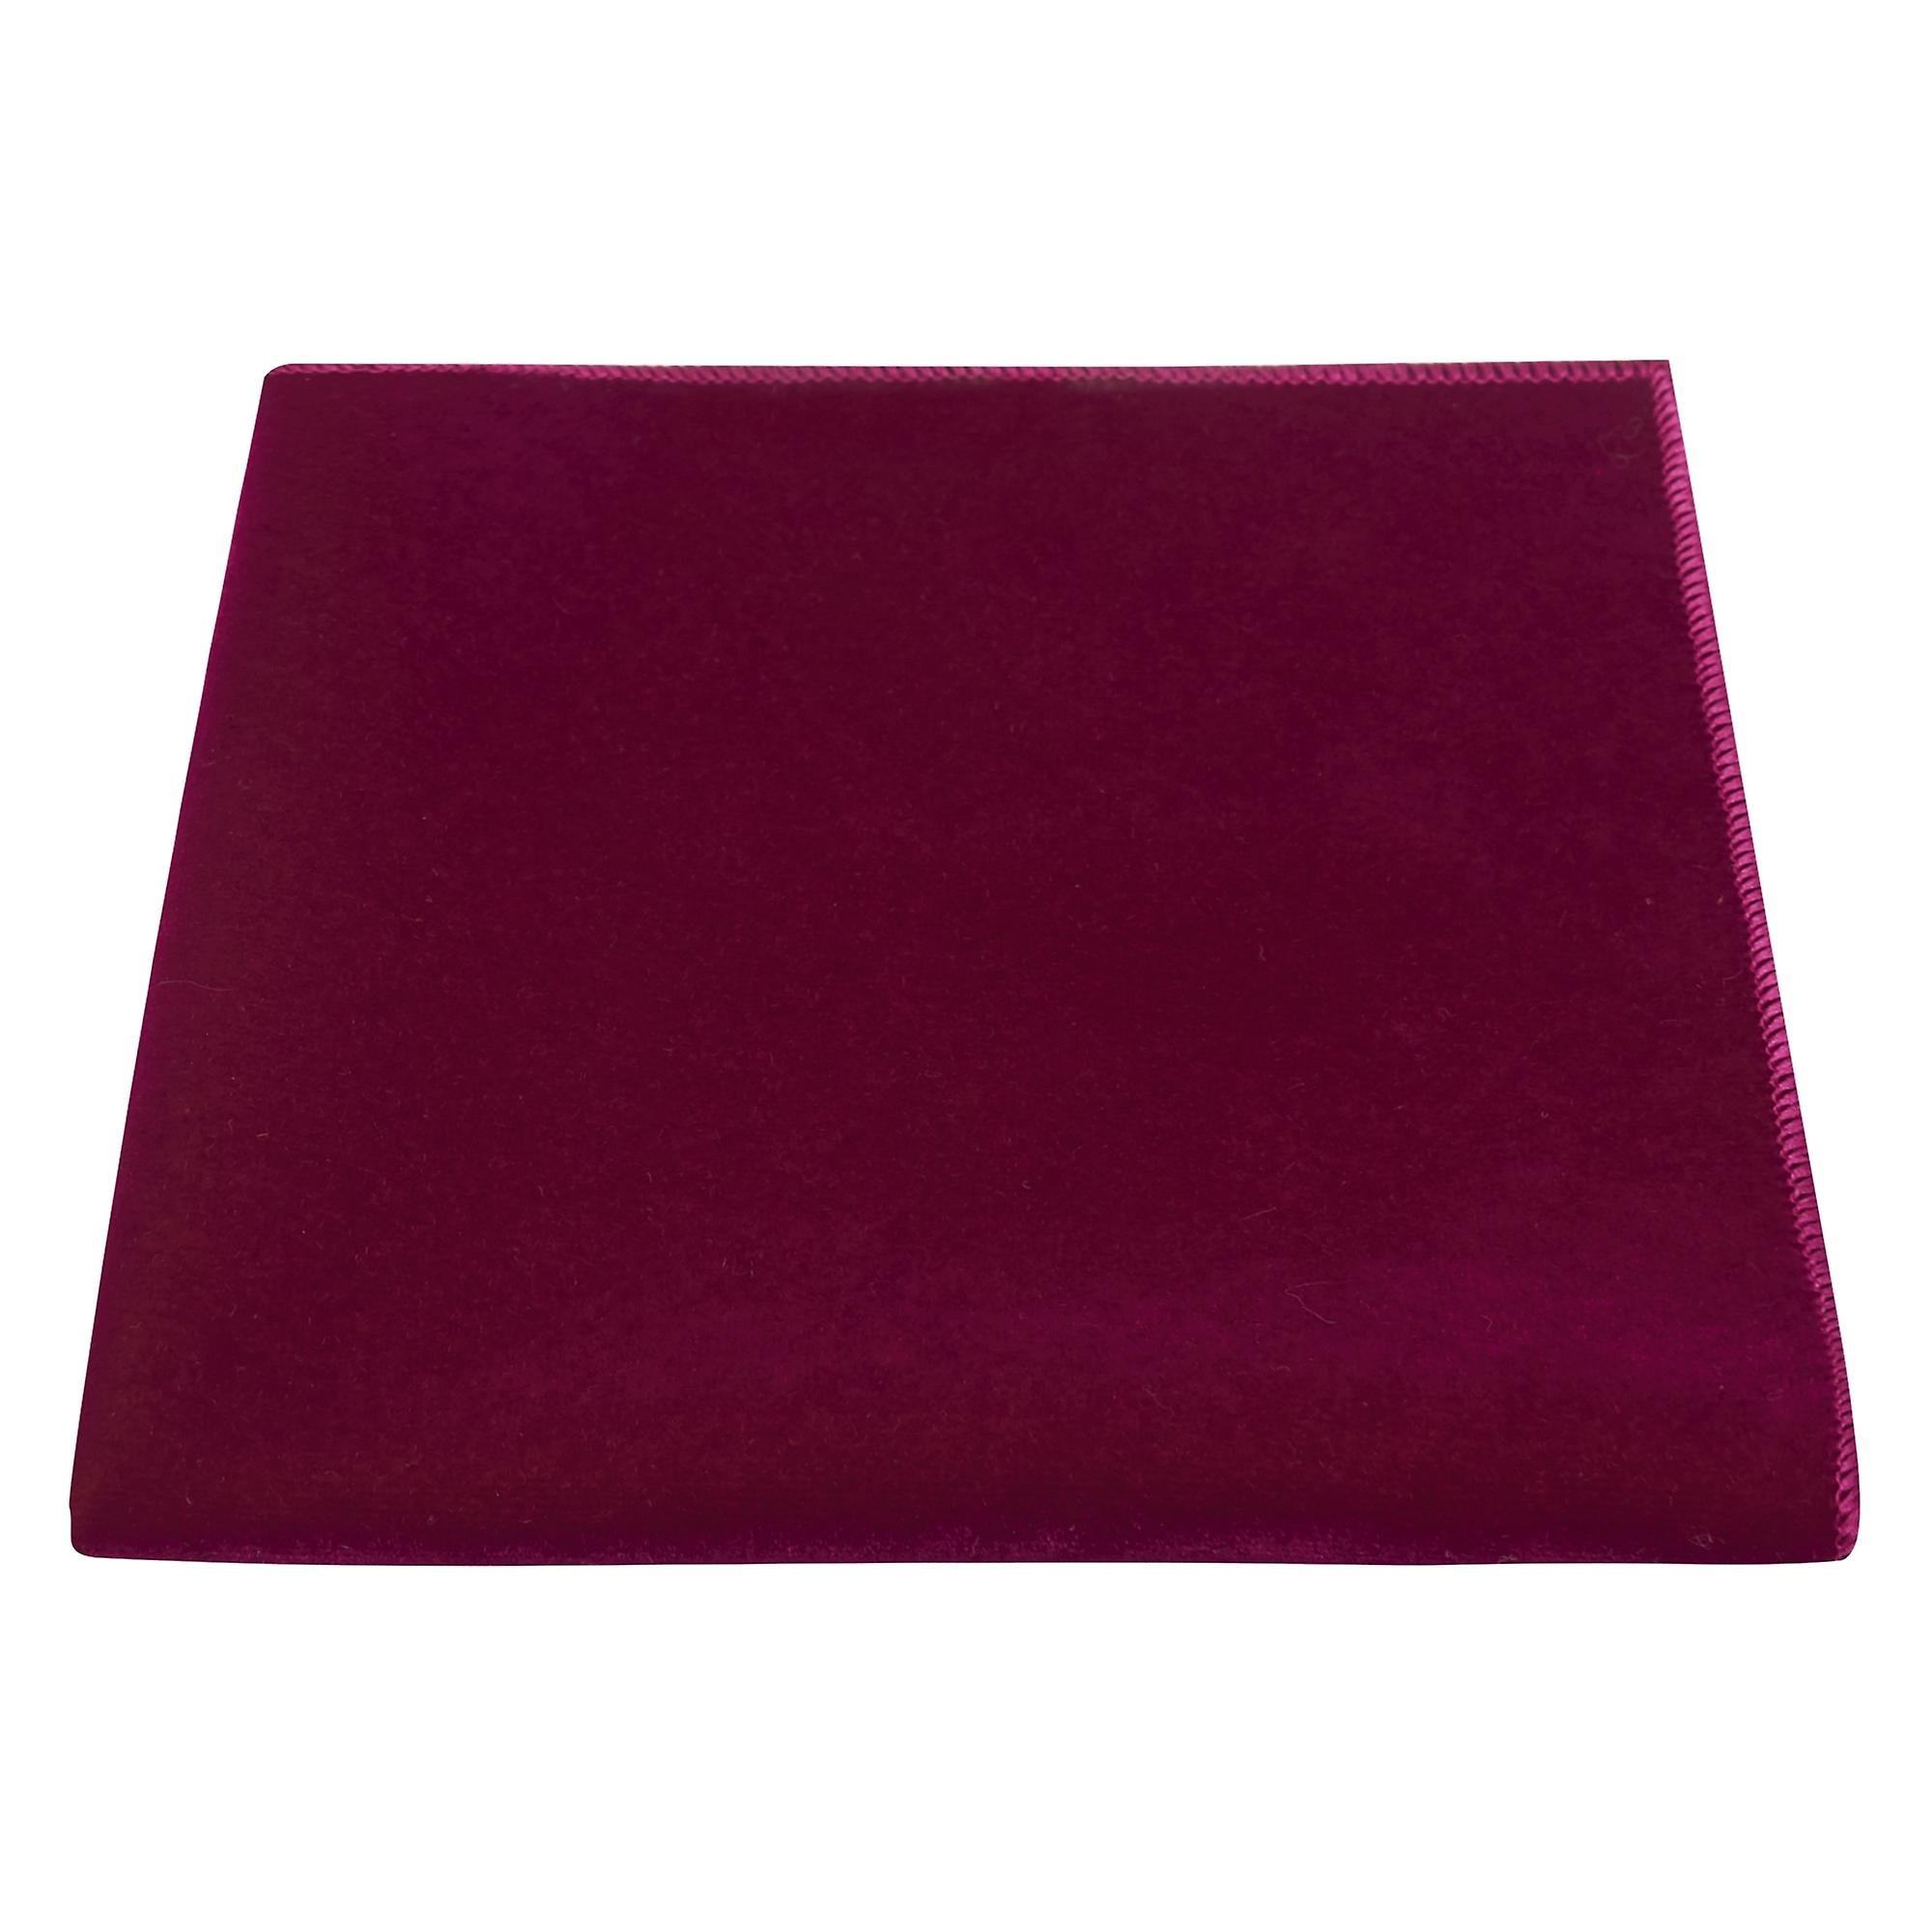 Luxury Morrocan Red Velvet Pocket Square, Handkerchief, Dark Pink